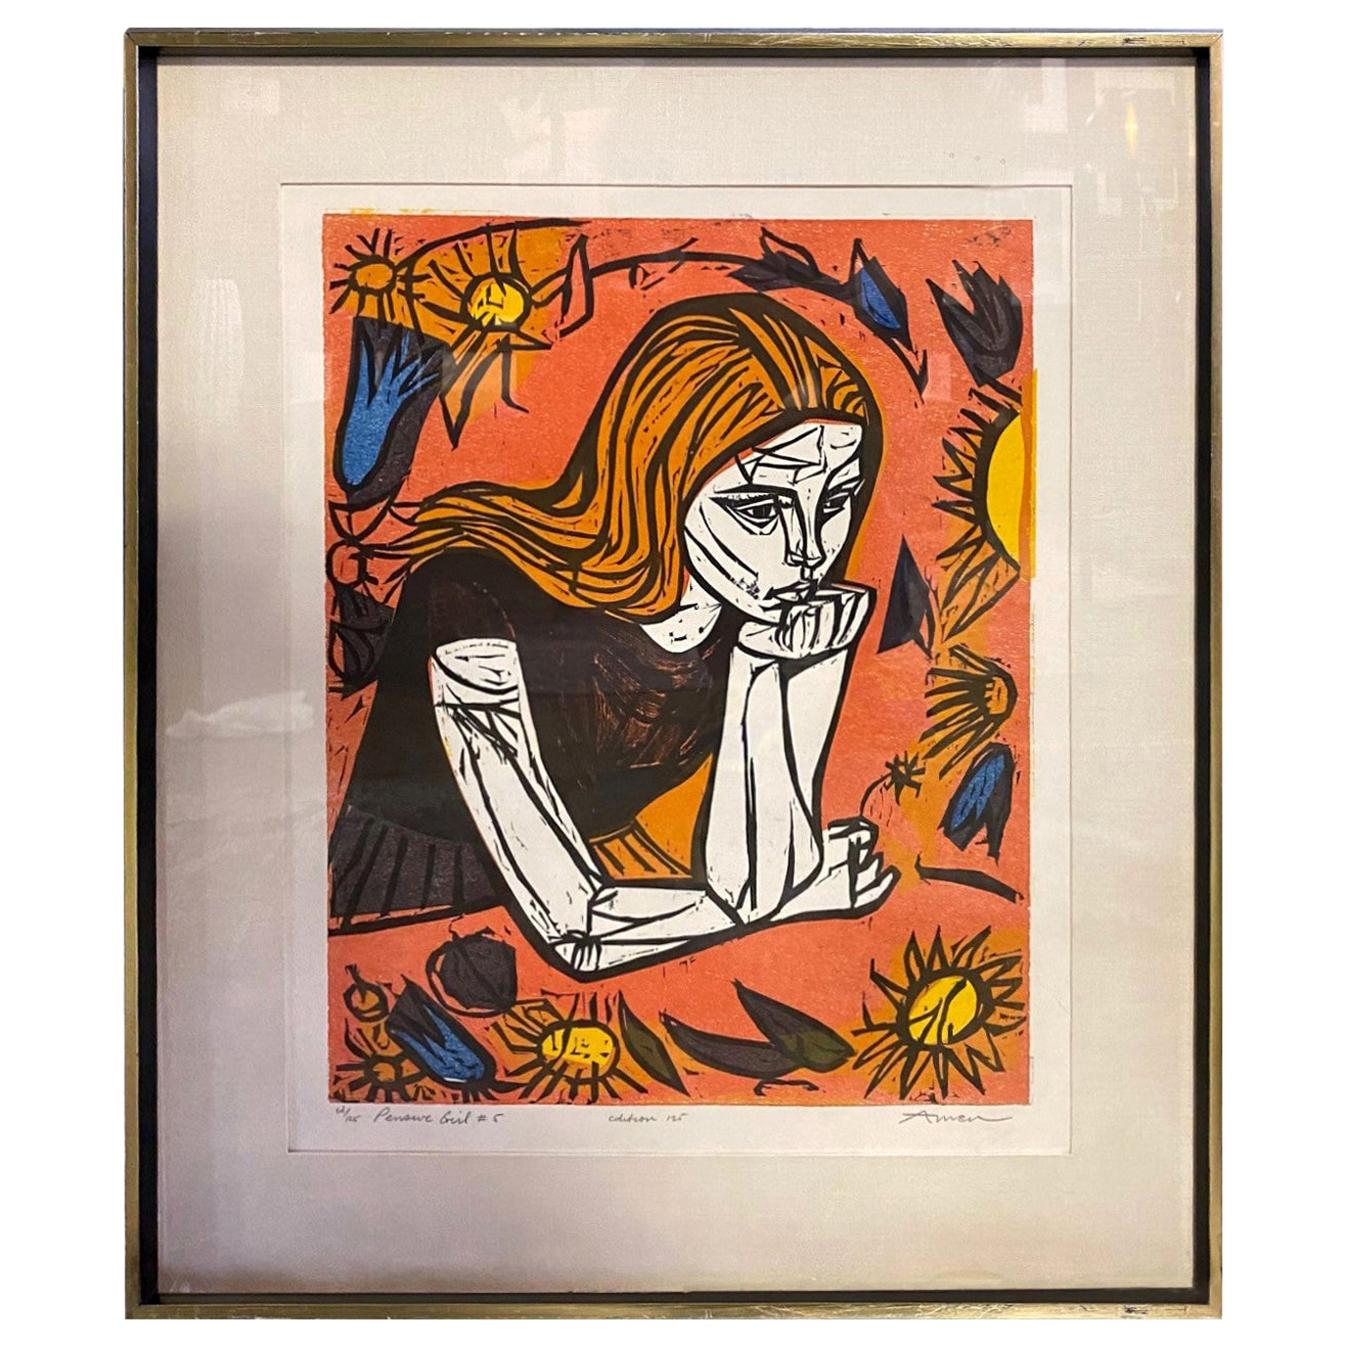 Irving Amen Signed Mid-Century Modern Limited Edition Woodcut Print Pensive Girl